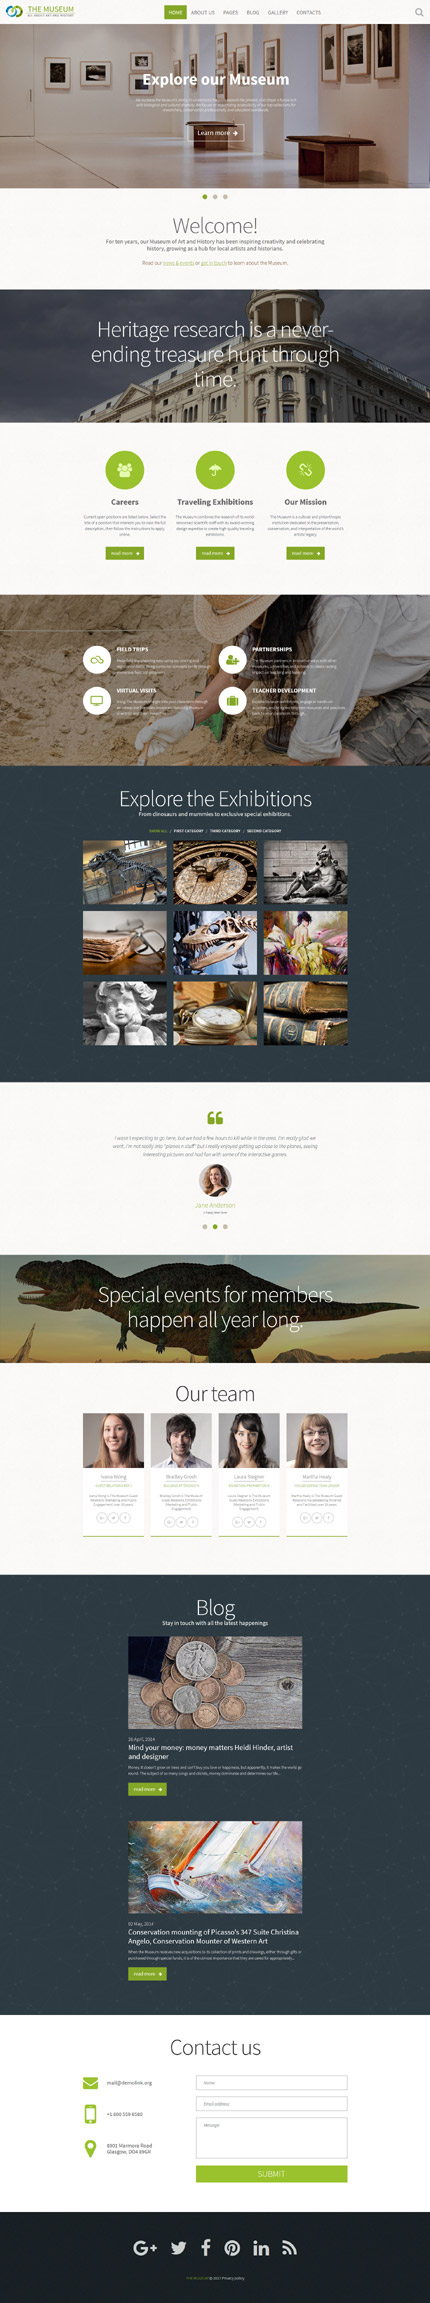 Society & Culture Most Popular website inspirations at your coffee break? Browse for more Joomla #templates! // Regular price: $75 // Sources available: .PSD, .PHP #Society & Culture #Most Popular #Joomla